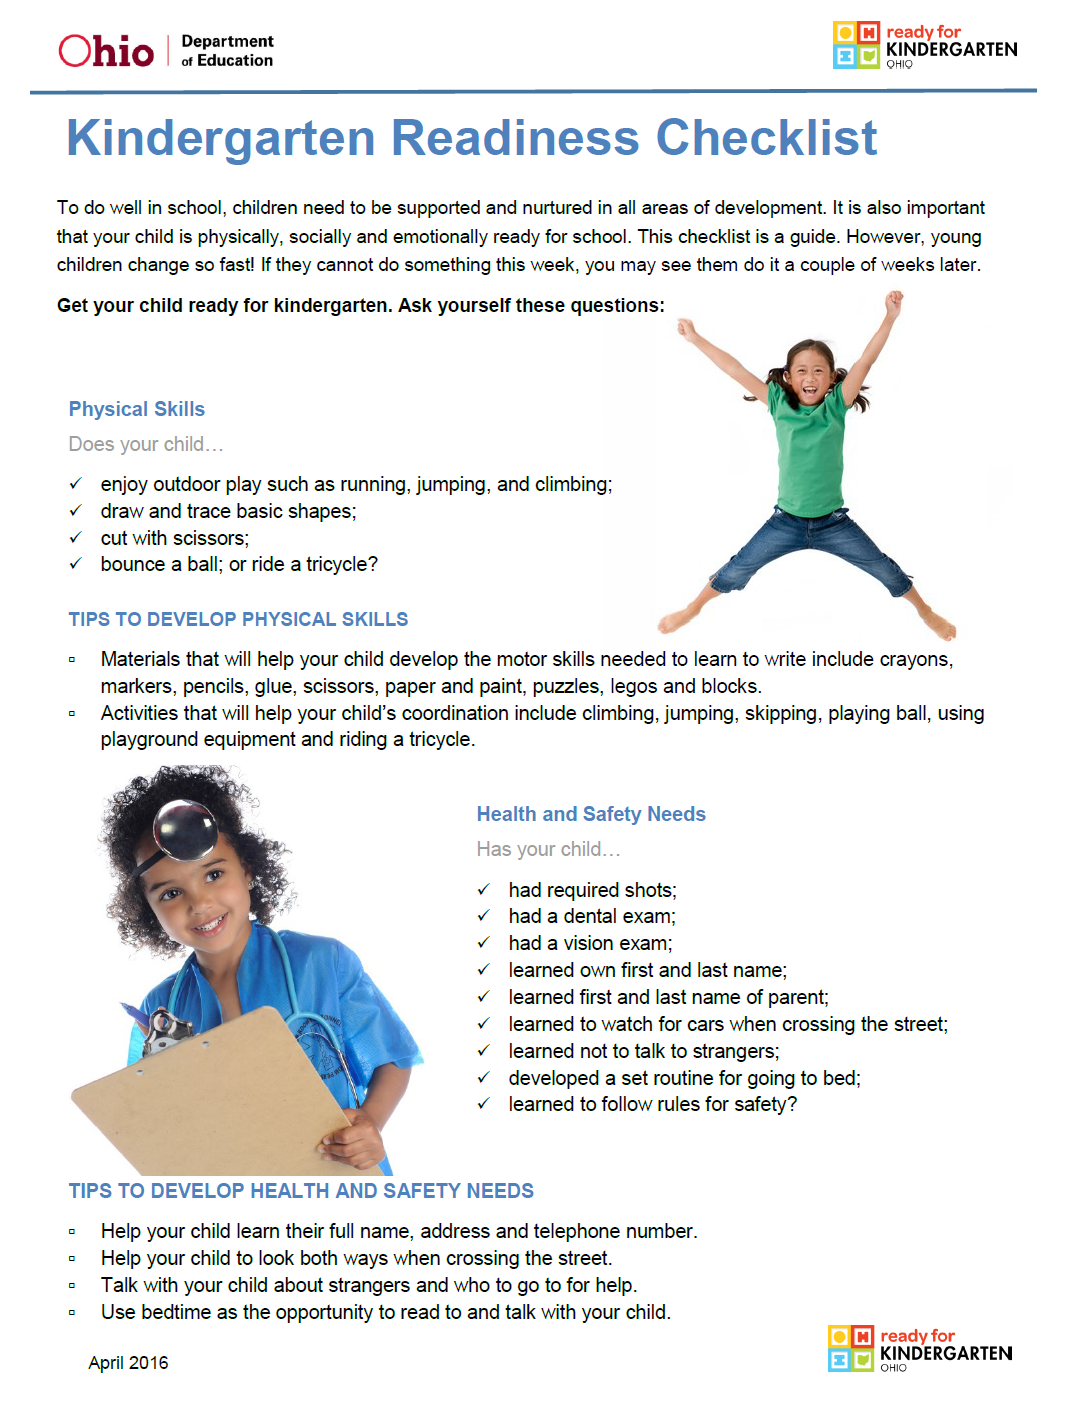 Preschool Ponderings Kindergarten Readiness Checklist